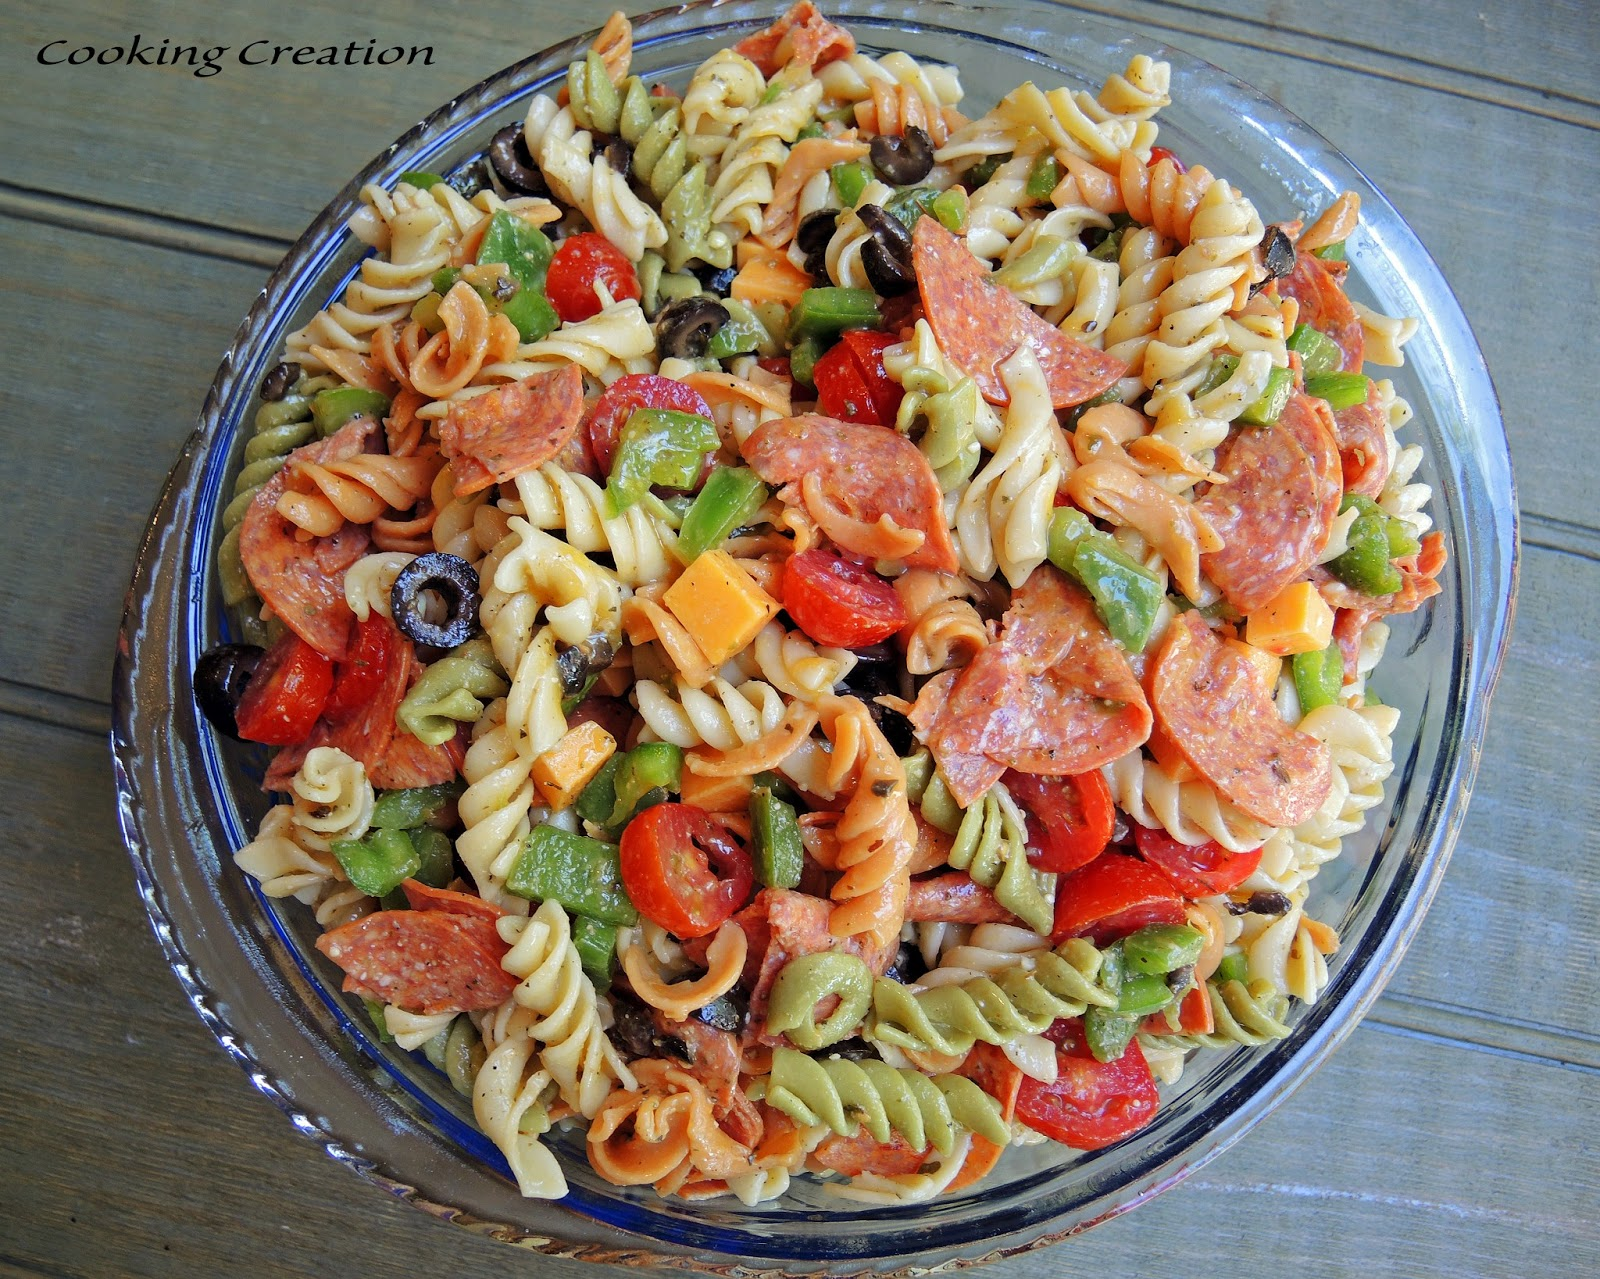 Cooking Creation: Italian Pasta Salad with Pepperoni & Red Wine ...